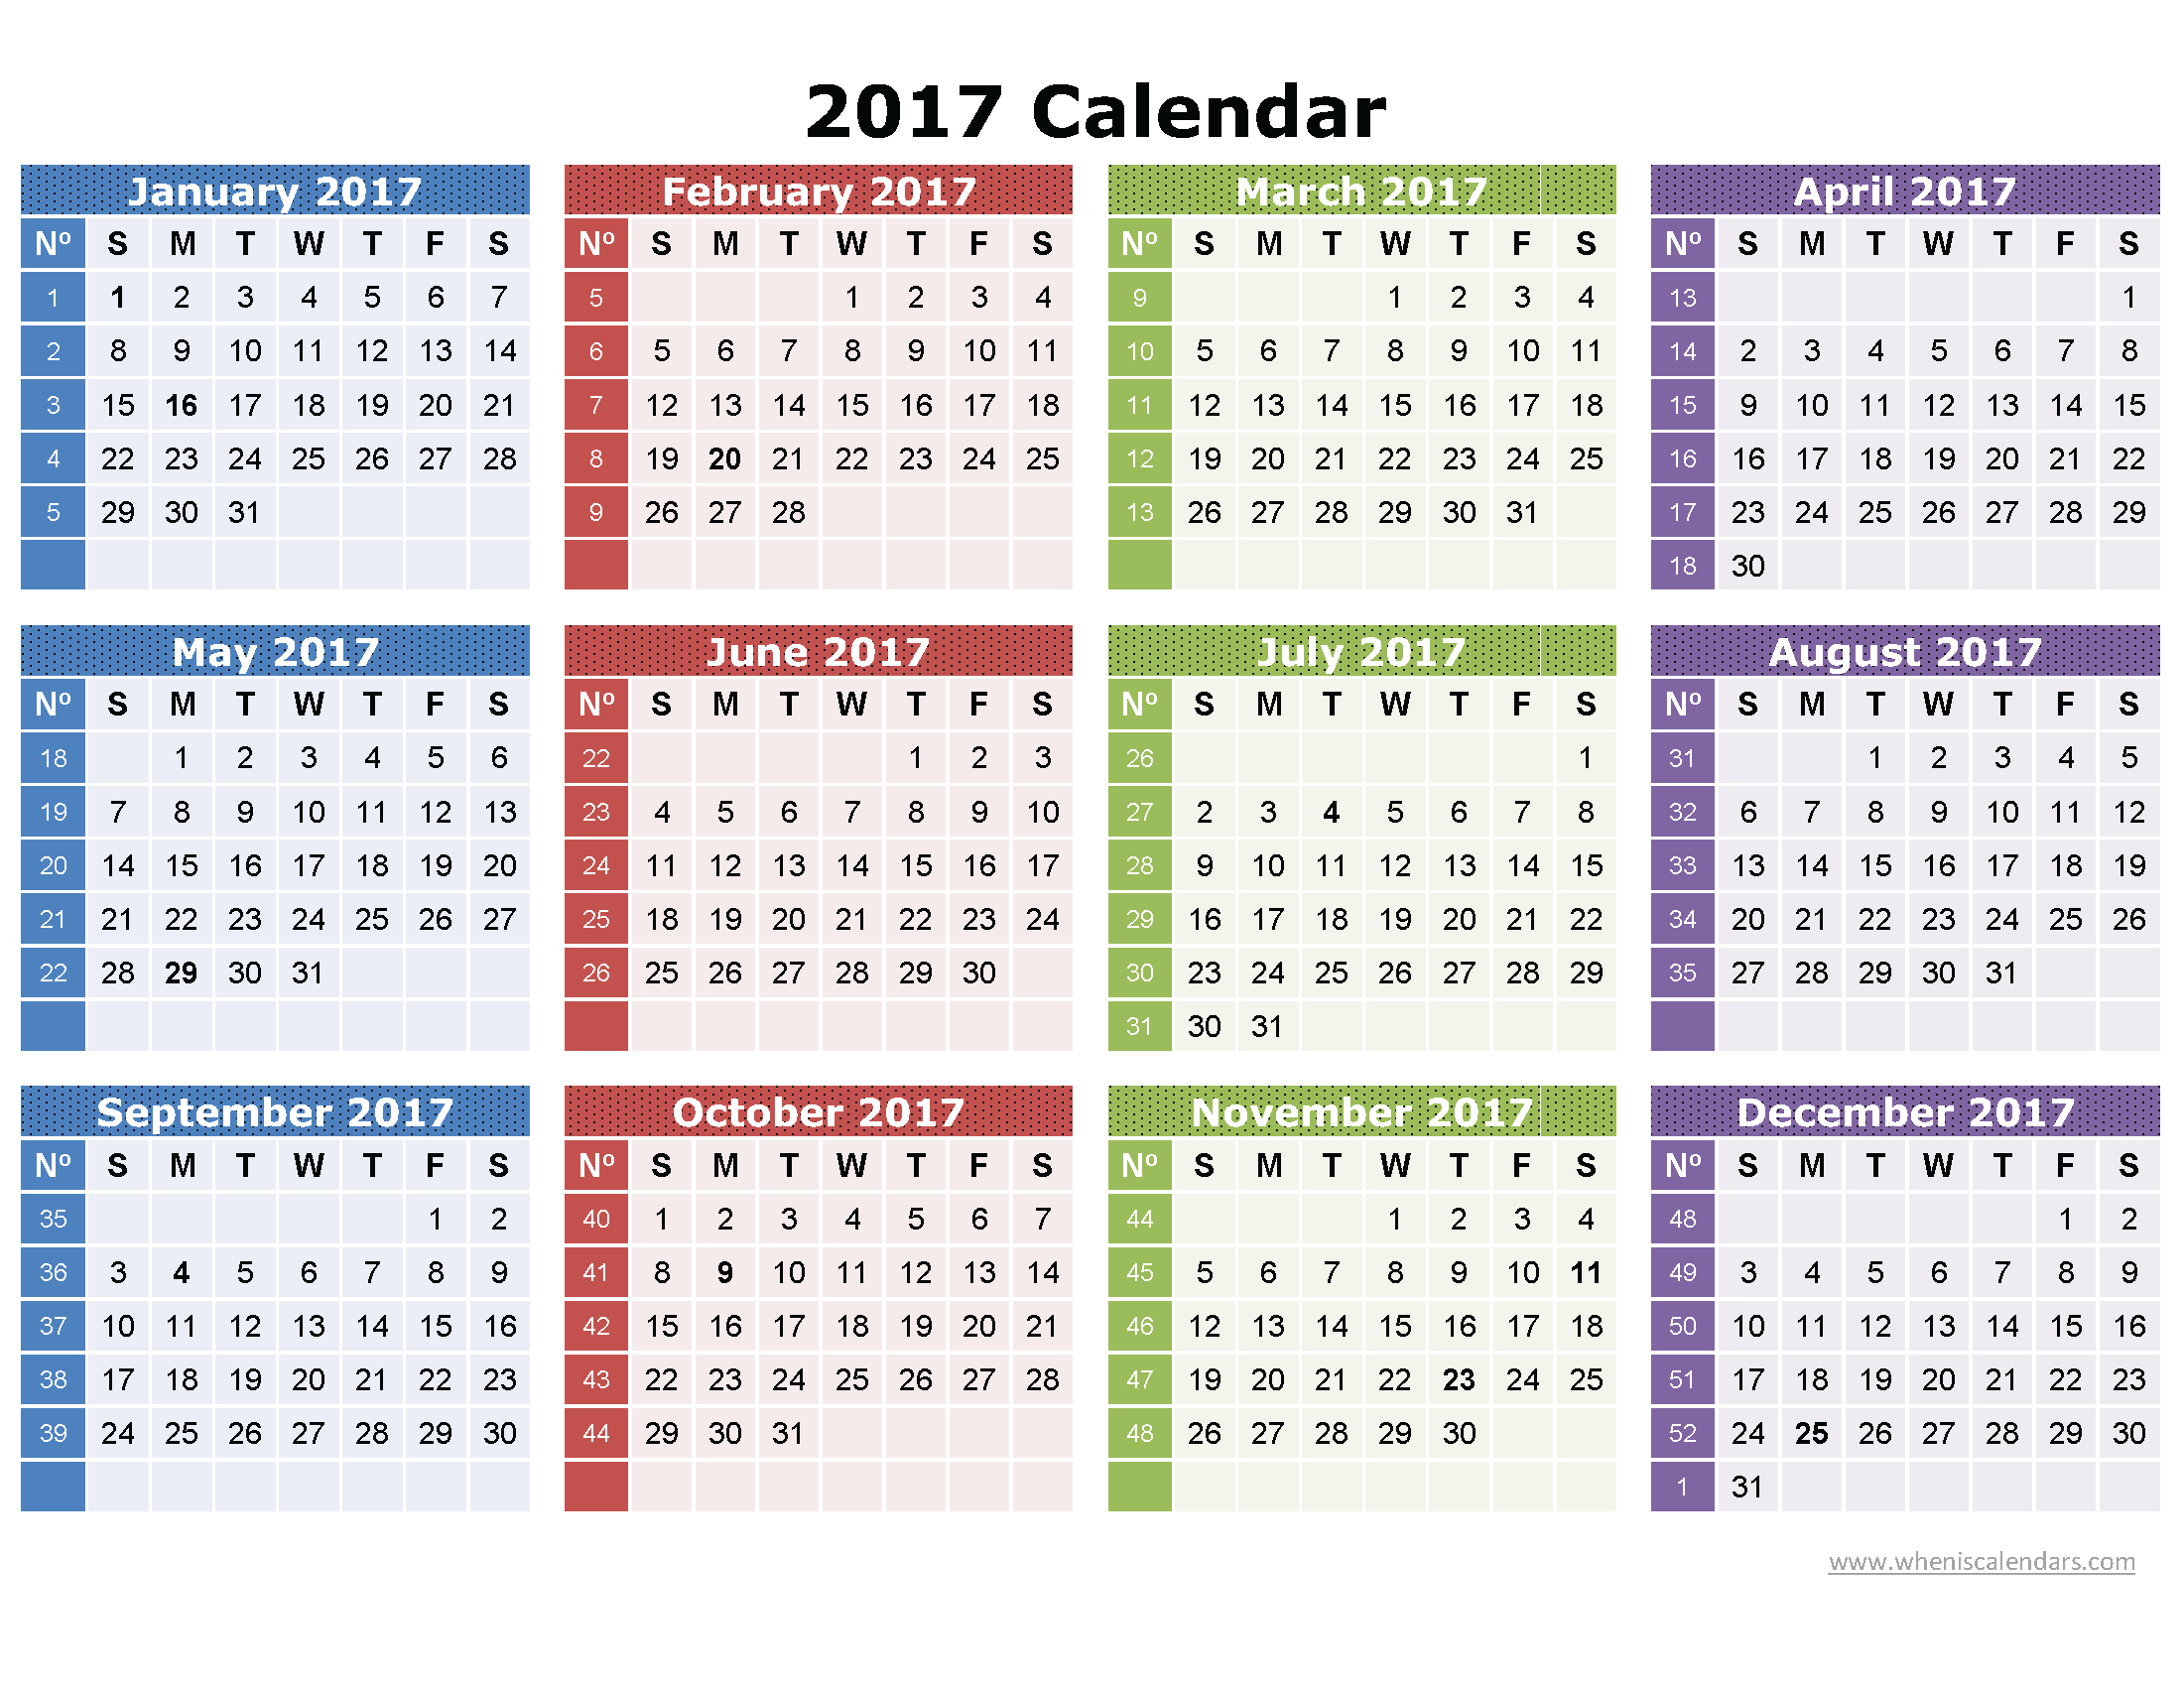 2017 Calendar Printable One Page | Download: Image (full size ...